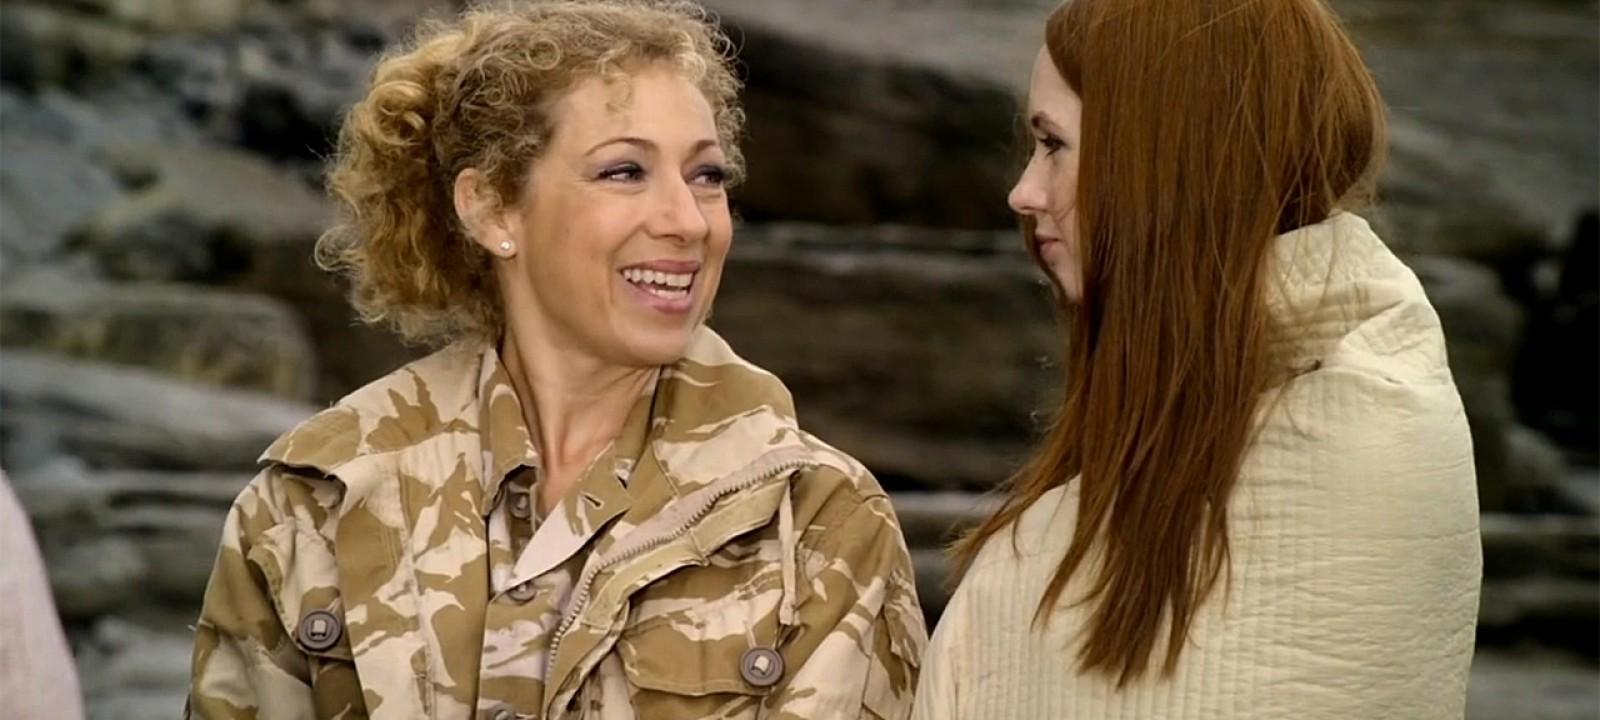 alex kingston actress